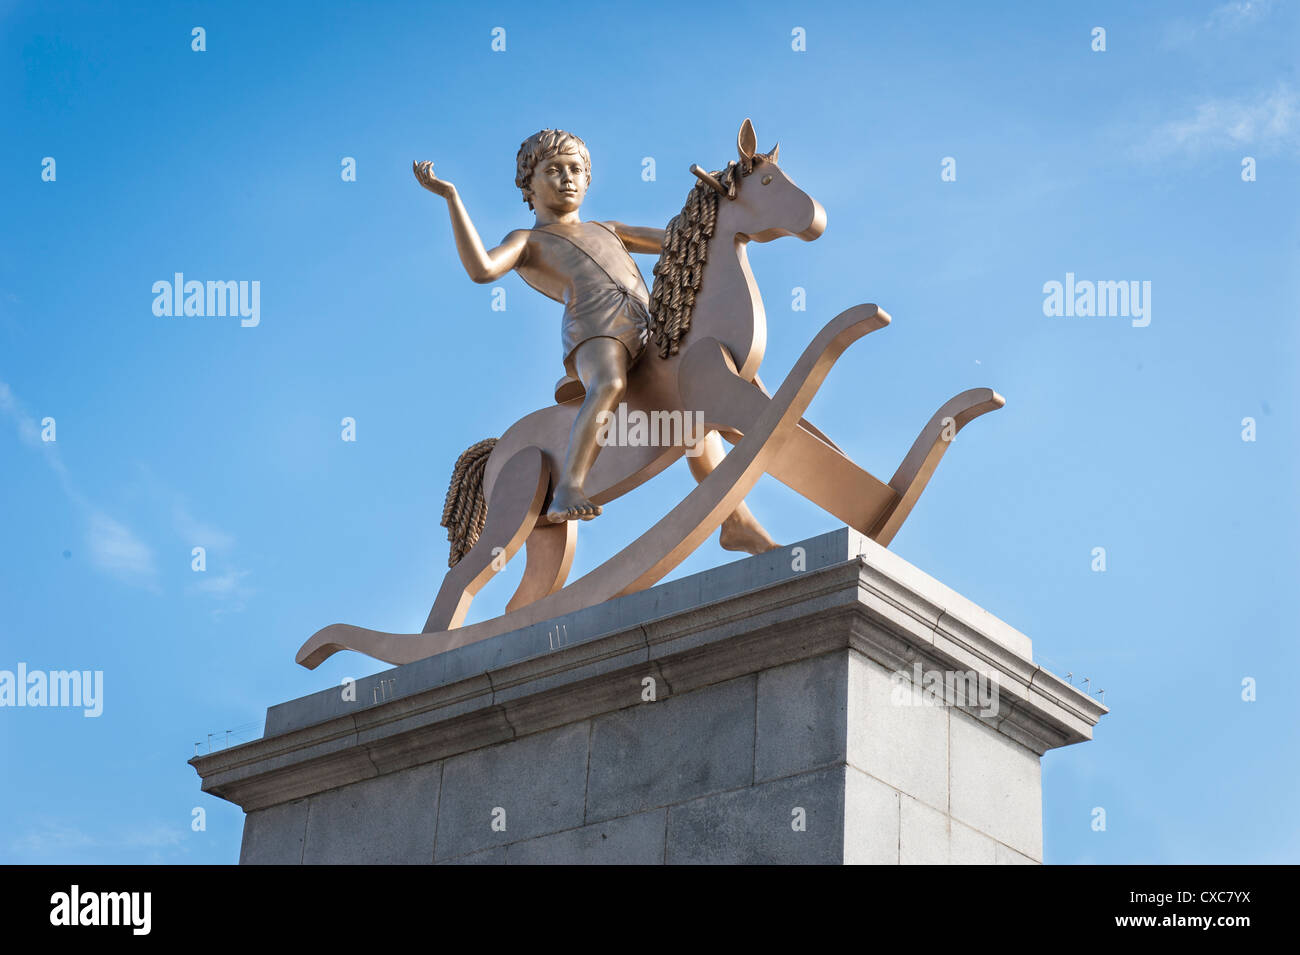 London Trafalgar Square Powerless Structures Fig 101 bronze statue Boy on a Rocking Horse 4th plinth by Elmgreen - Stock Image